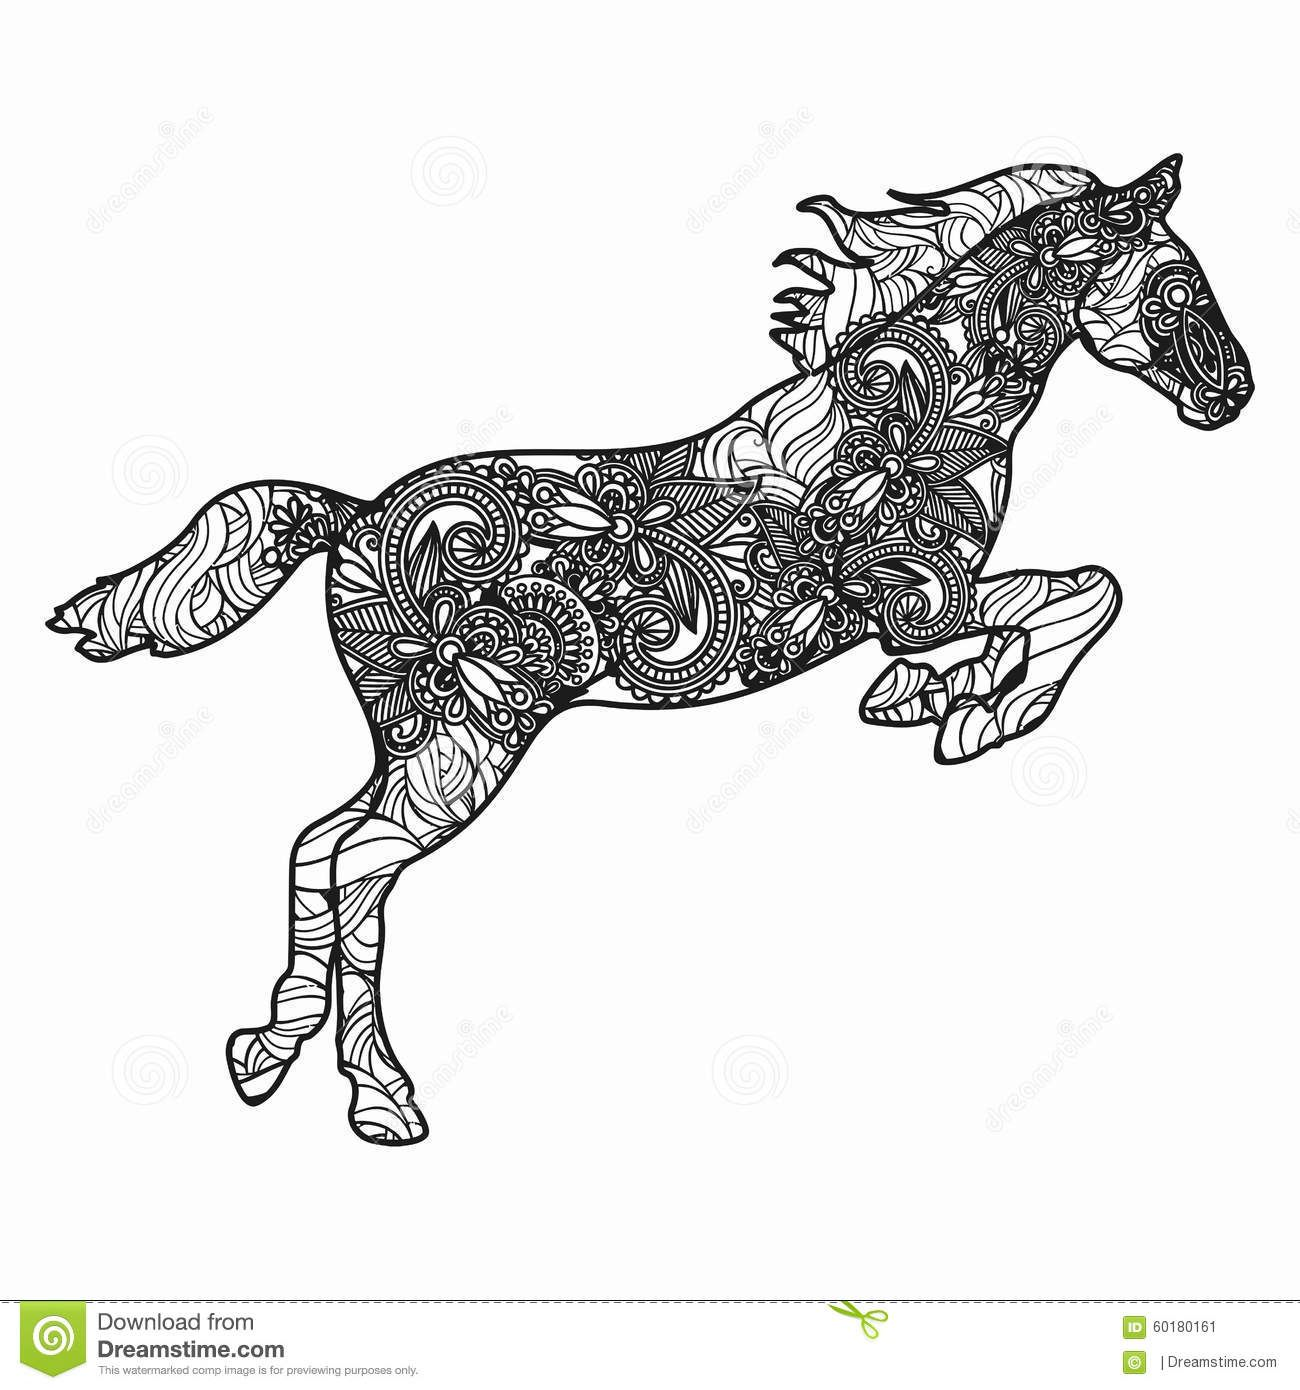 Horse Coloring Pages Adult Art Therapy Zebras Zentangle Unicorns Shells Horses Templates See More